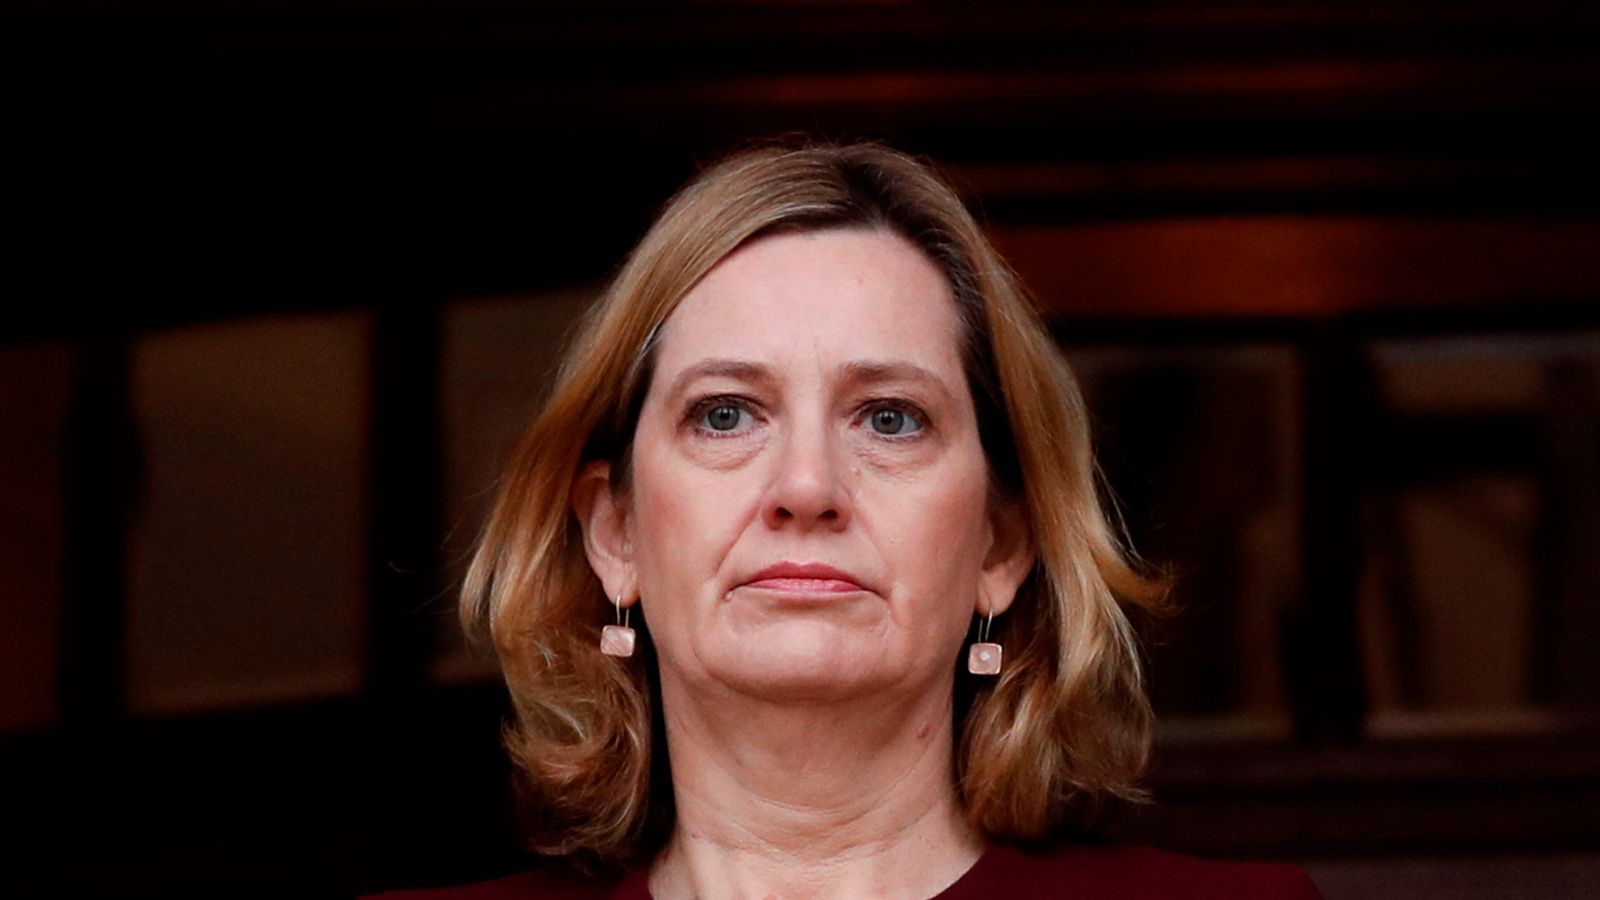 Senior Tories back Amber Rudd as she fights to save job ...